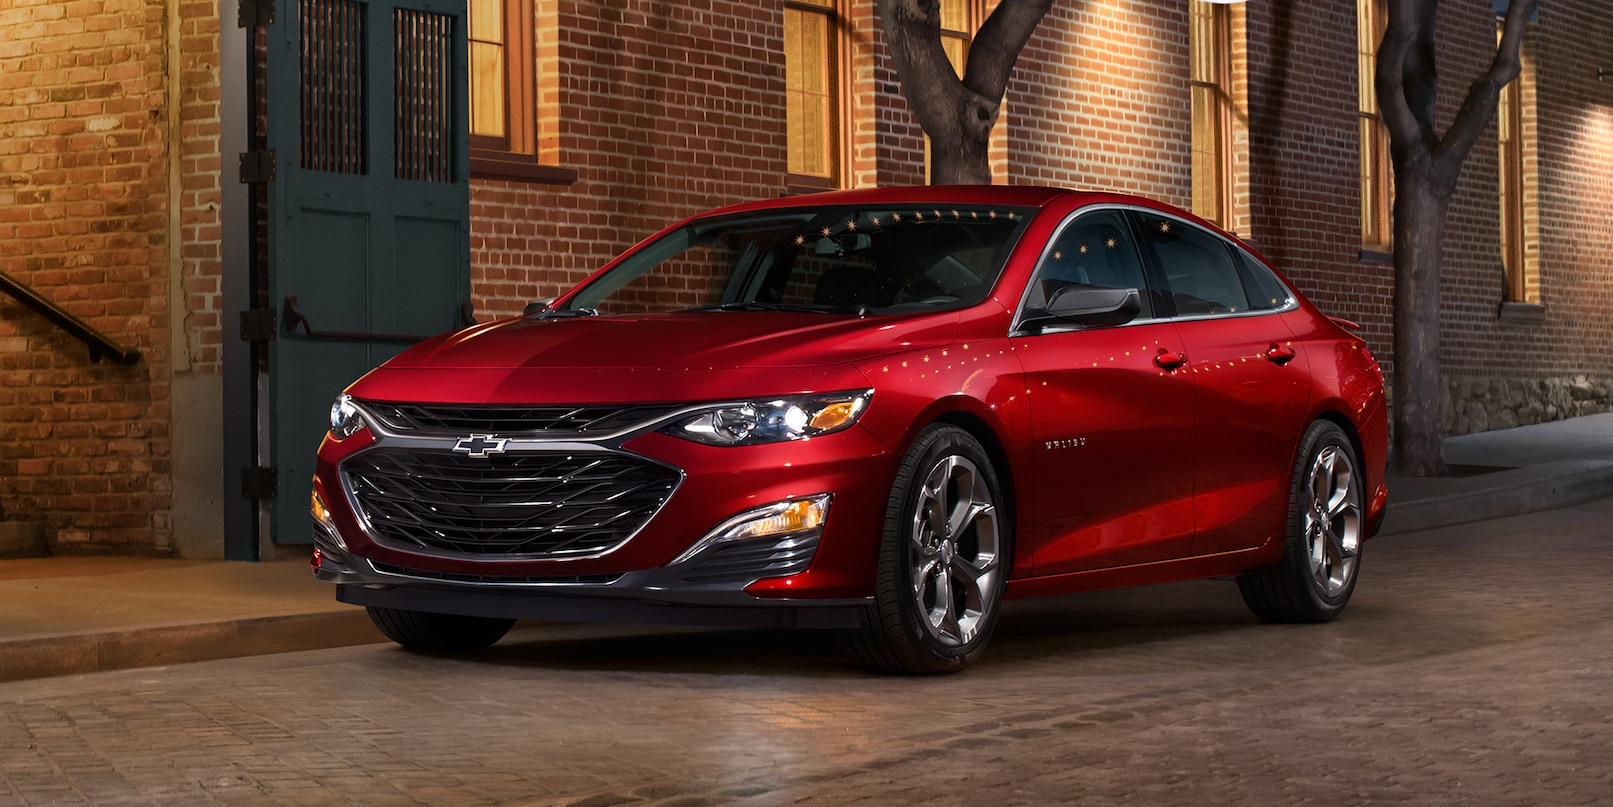 2019 Chevrolet Malibu Leasing near Oak Lawn, IL